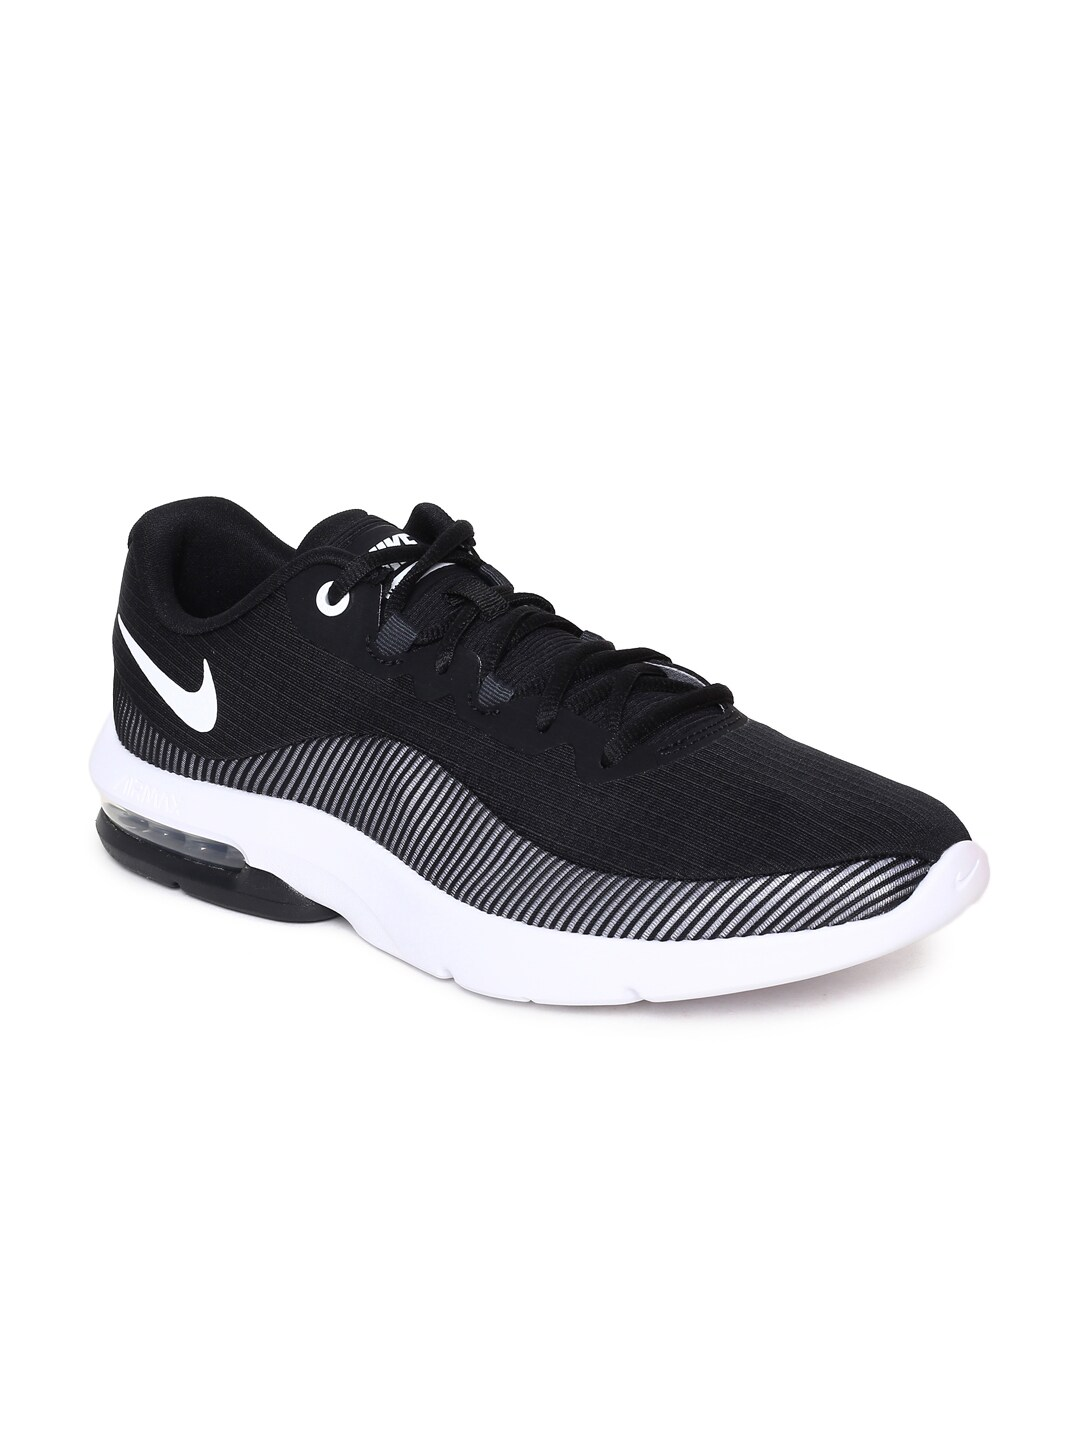 21c5481270f7 Nike Air Max Shoes - Buy Nike Air Max Shoes Online for Men   Women